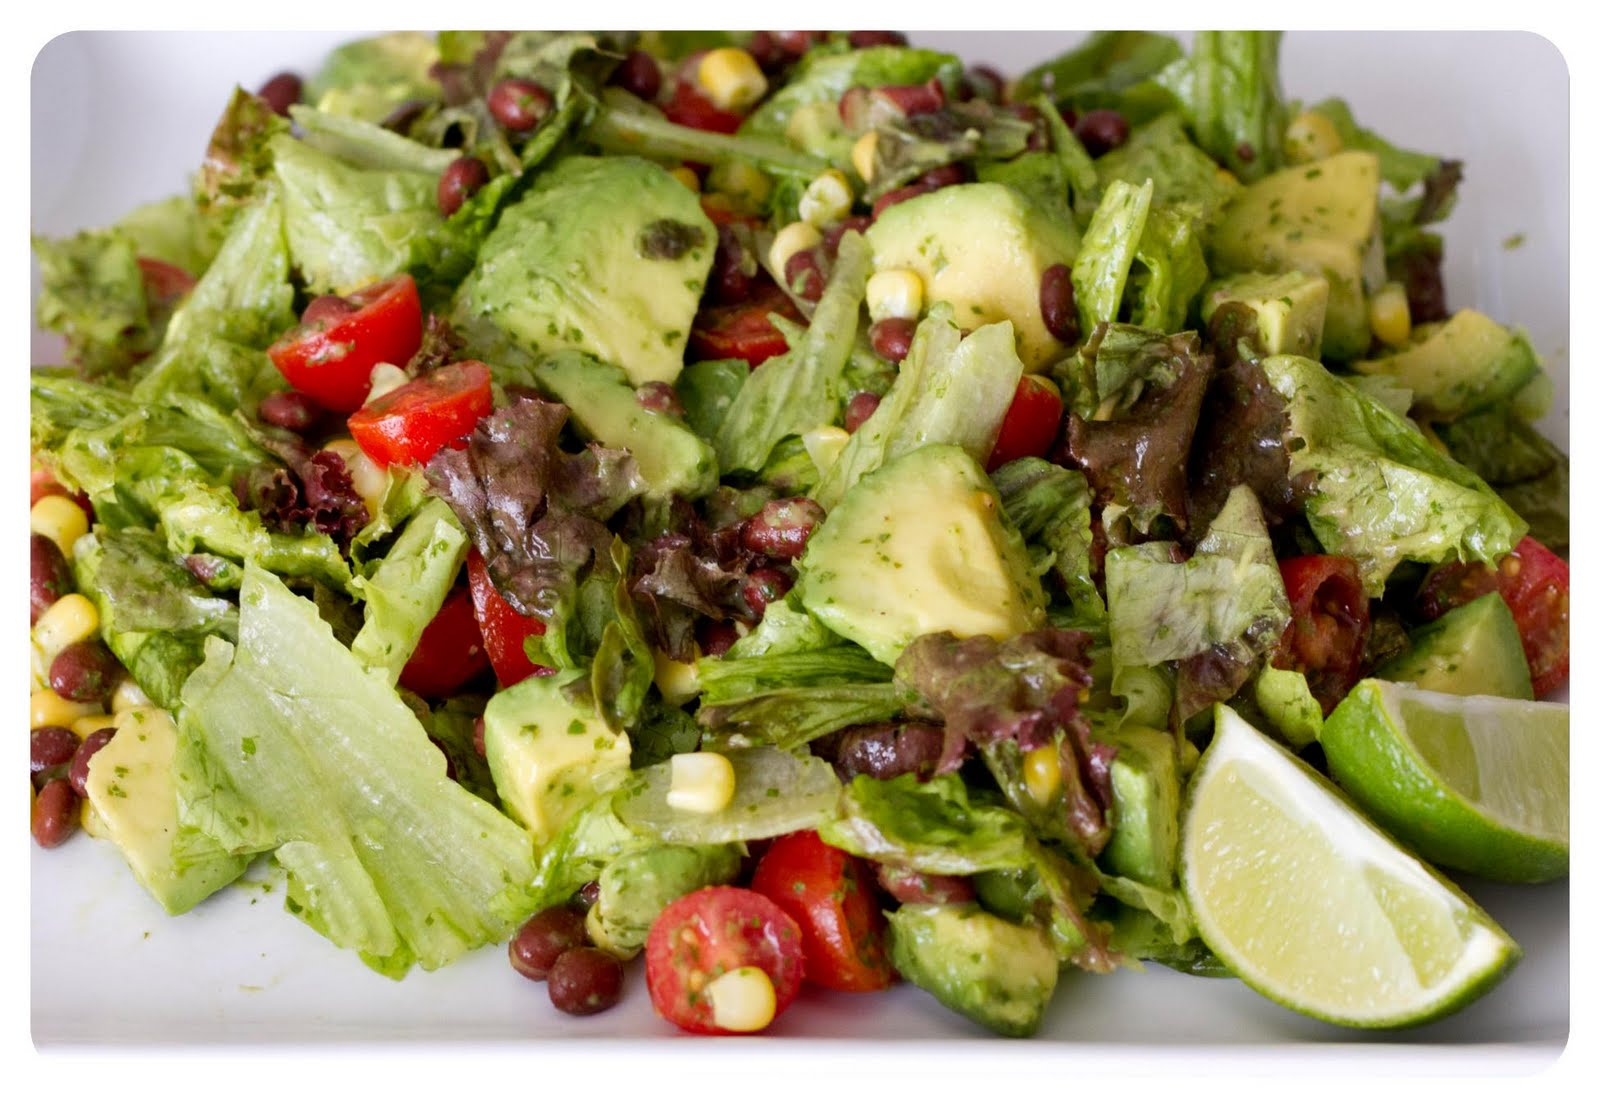 ... avocado salad cilantro and lime crab salad in avocado halves recipe